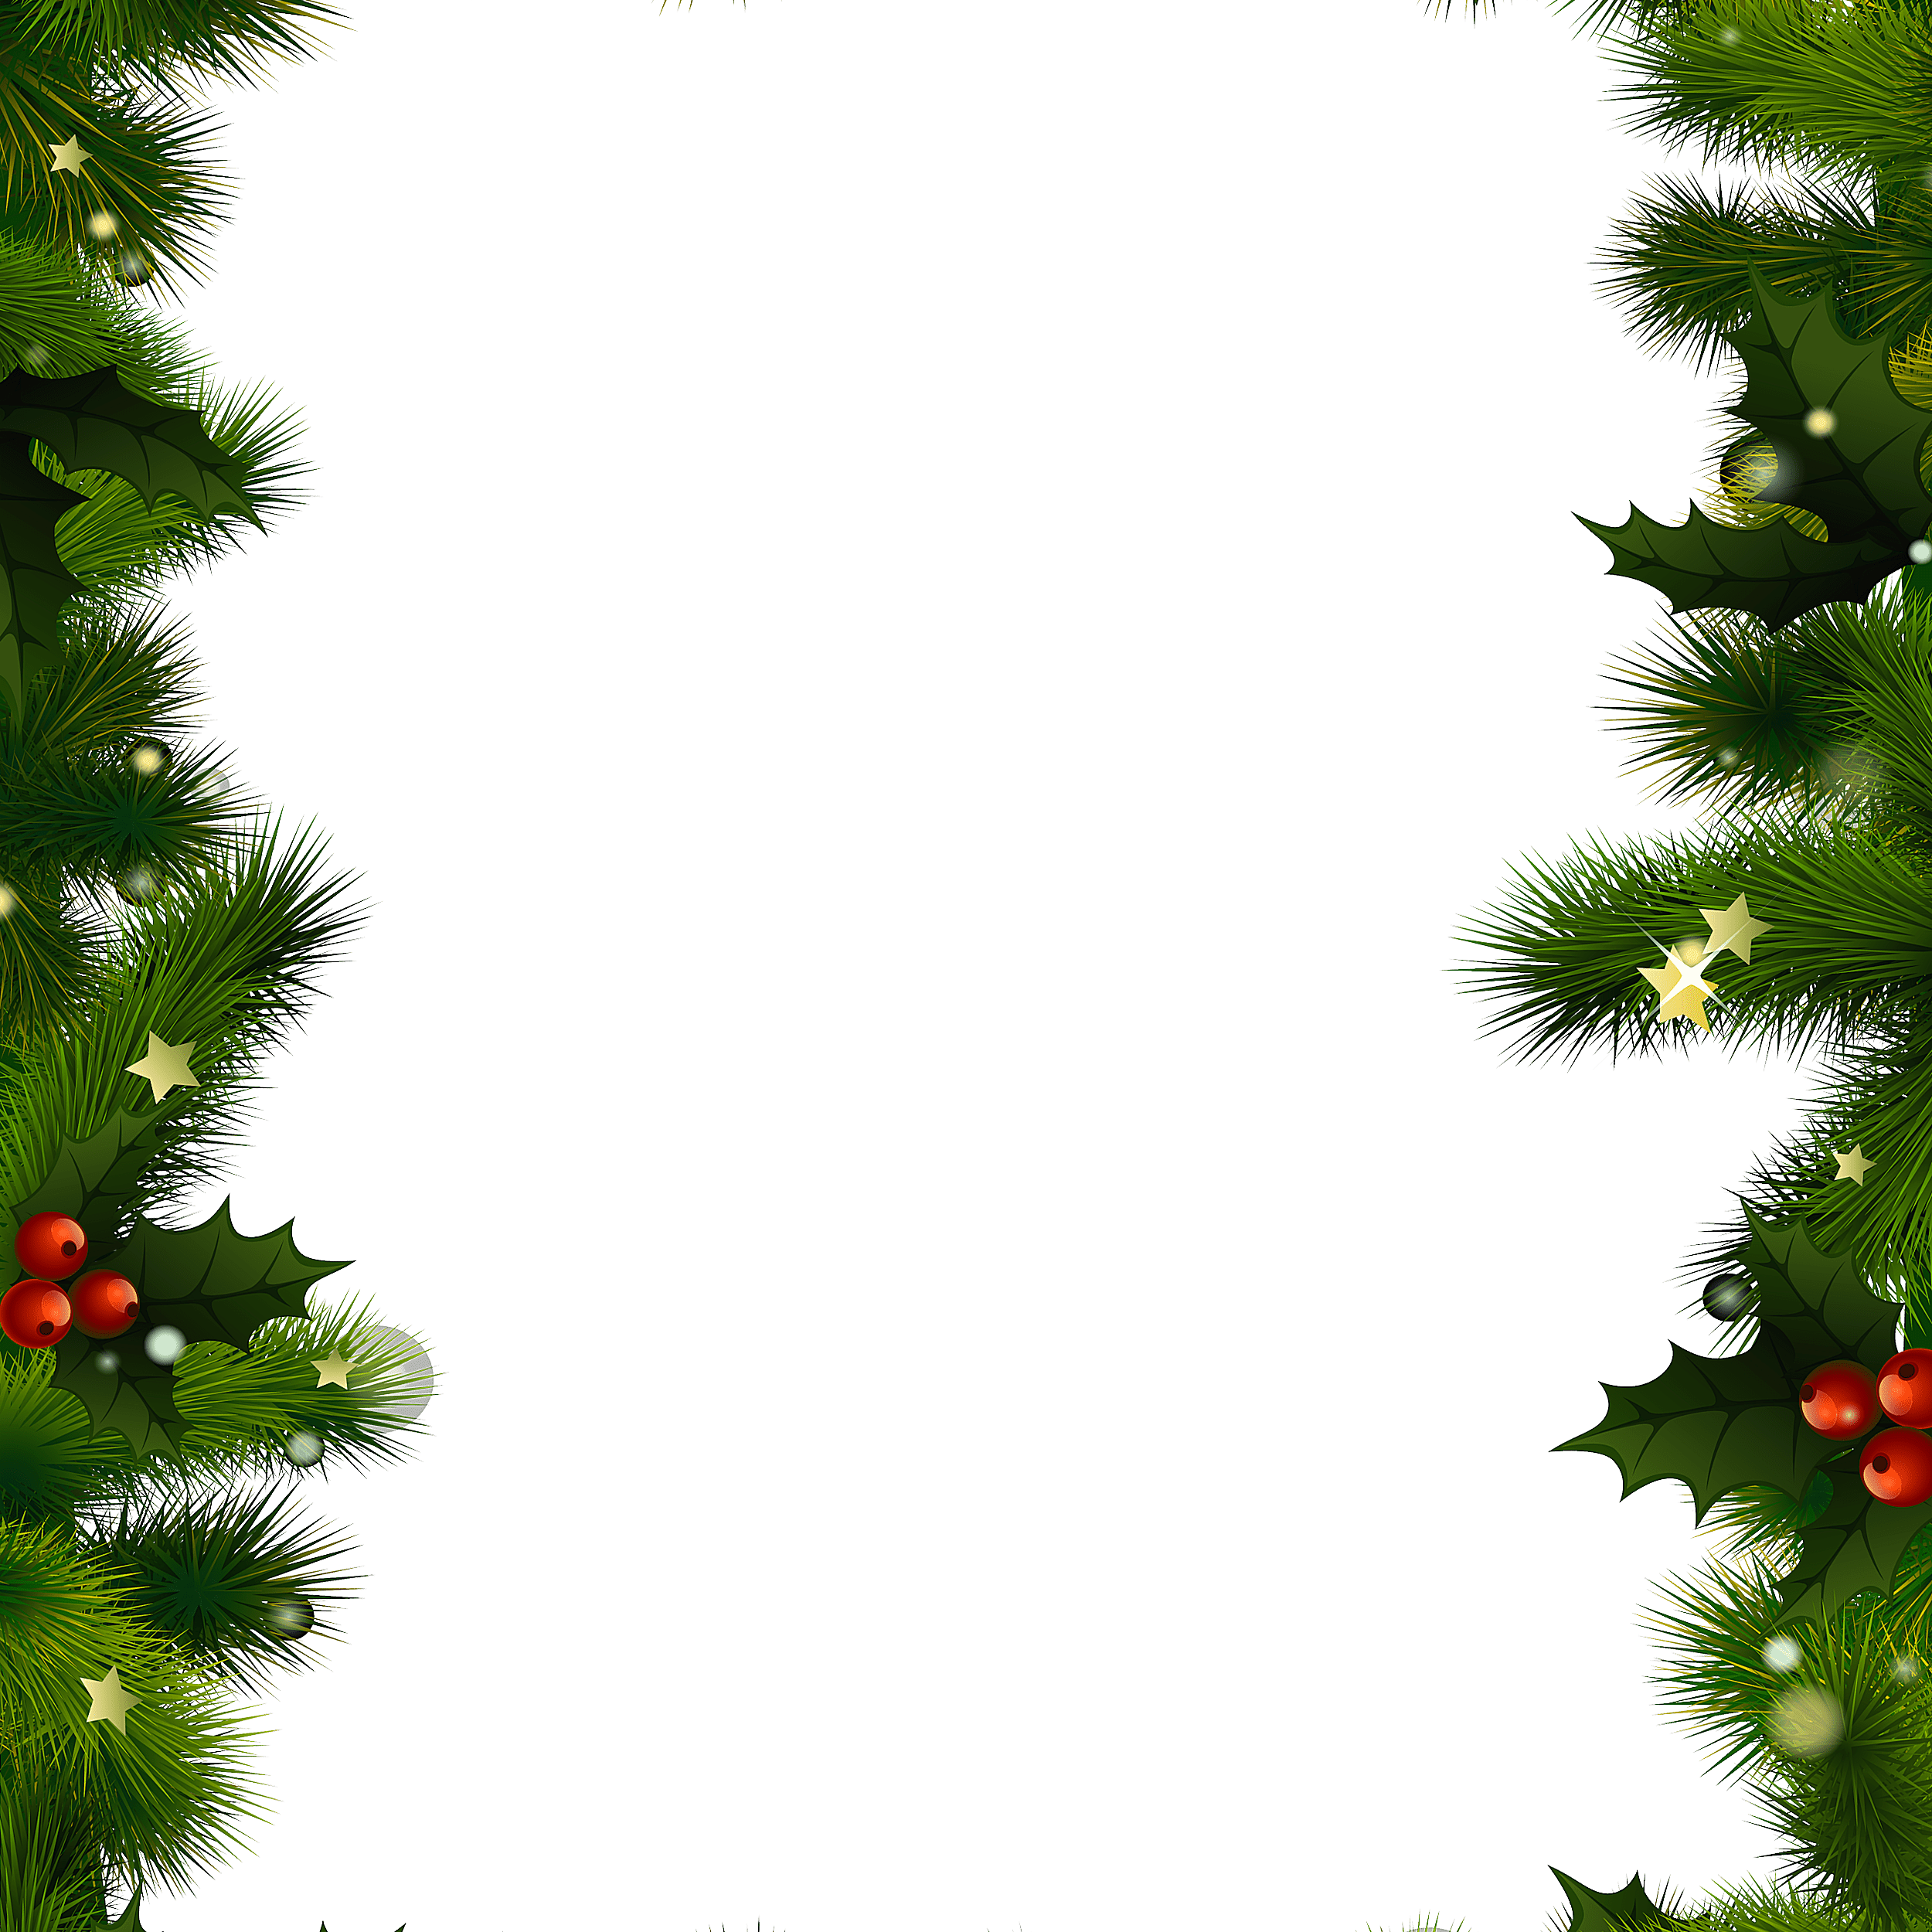 a christmas border with evergreen and berries - Christmas Borders Free